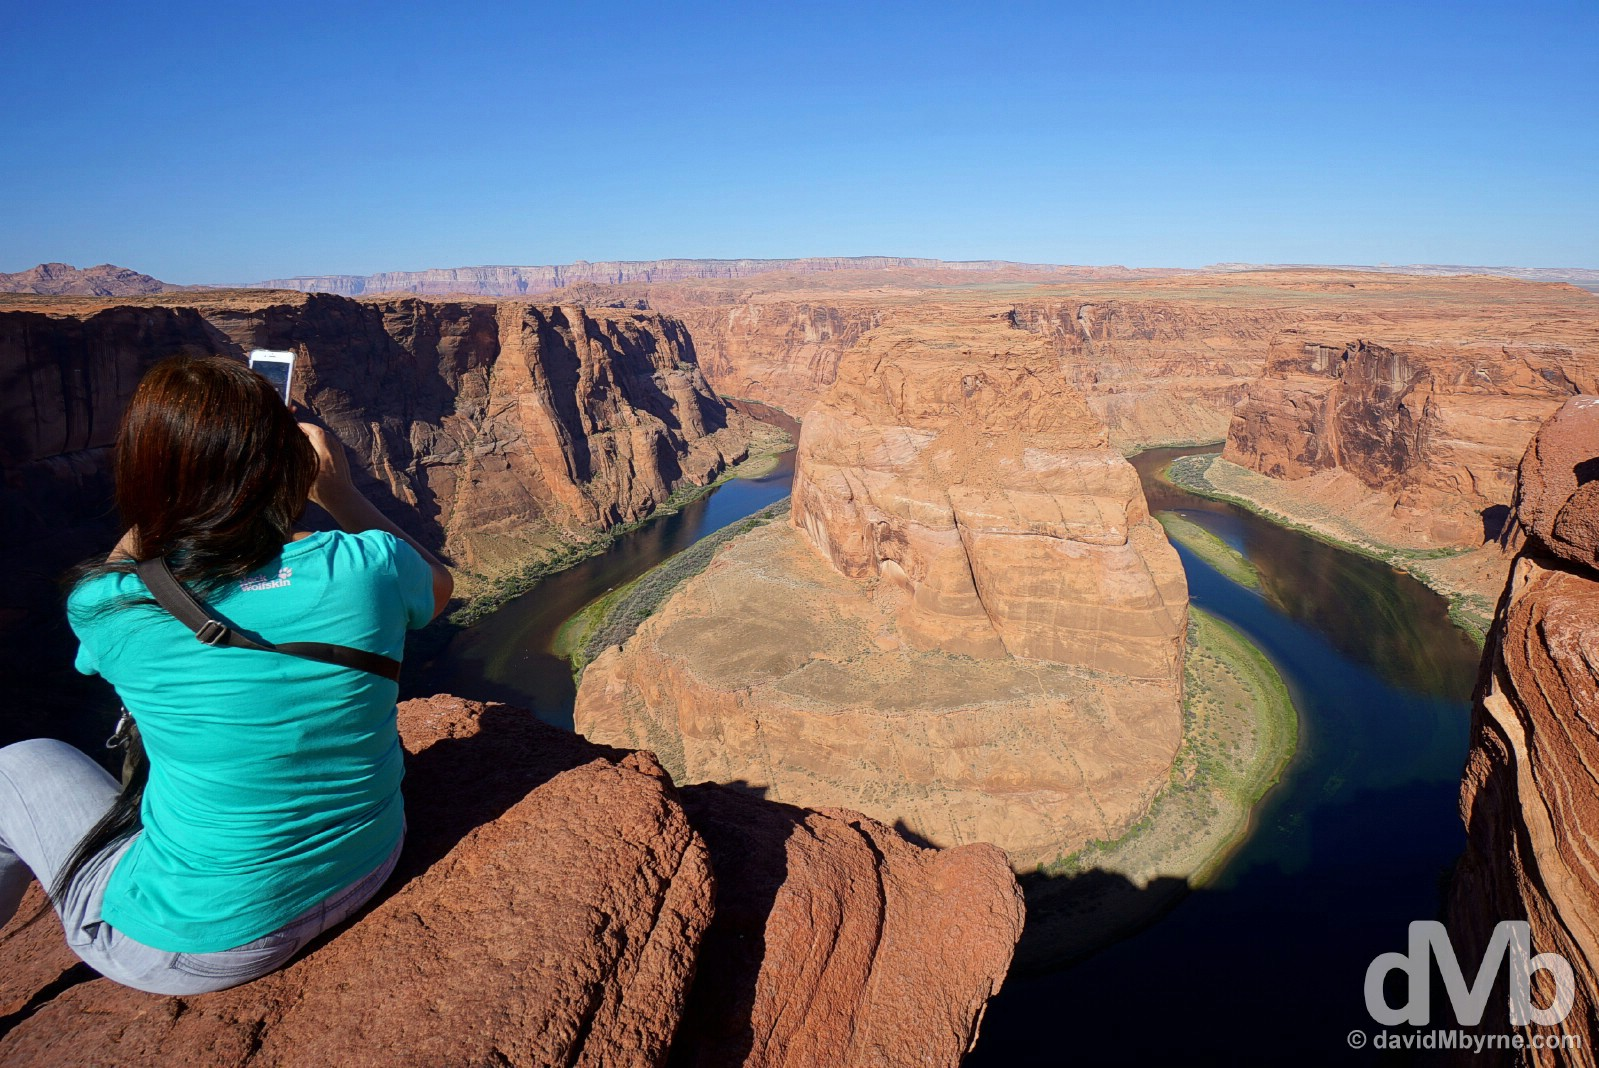 Overlooking the Horseshoe Bend of the Colorado River outside Page, Arizona, USA. September 9, 2016.